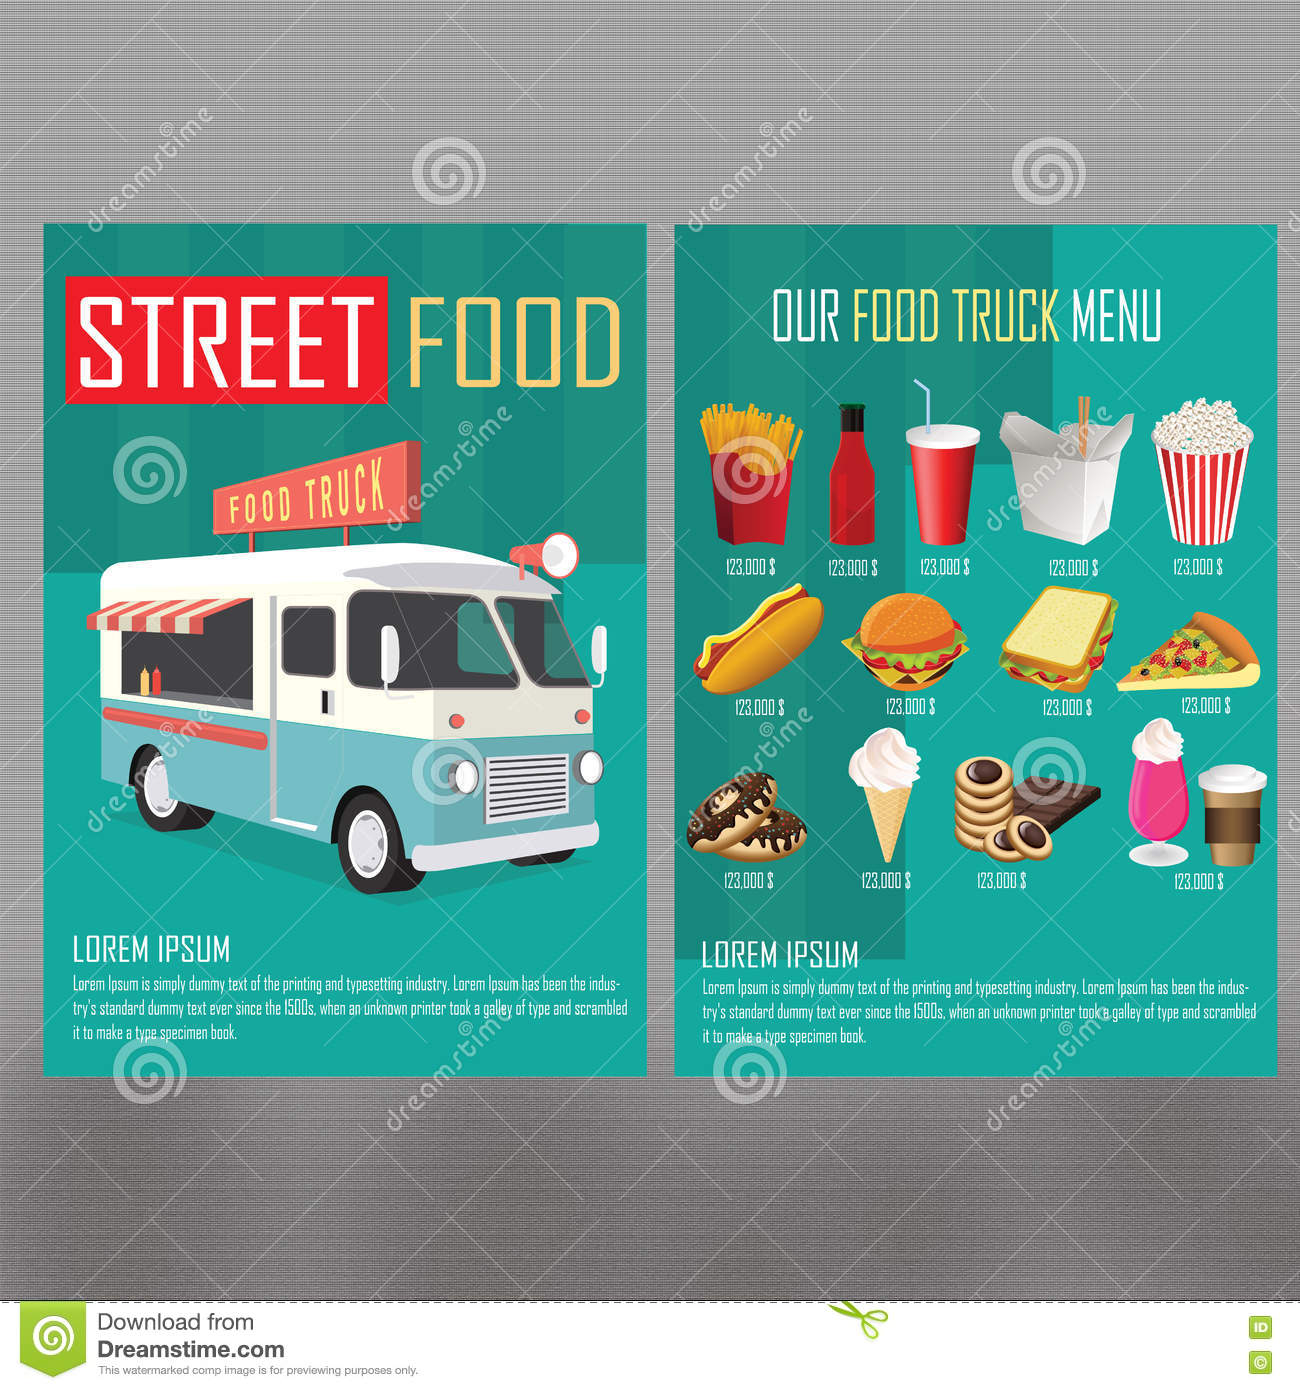 Tosca food truck menu stock illustration image of for Kitchen 88 food truck utah menu